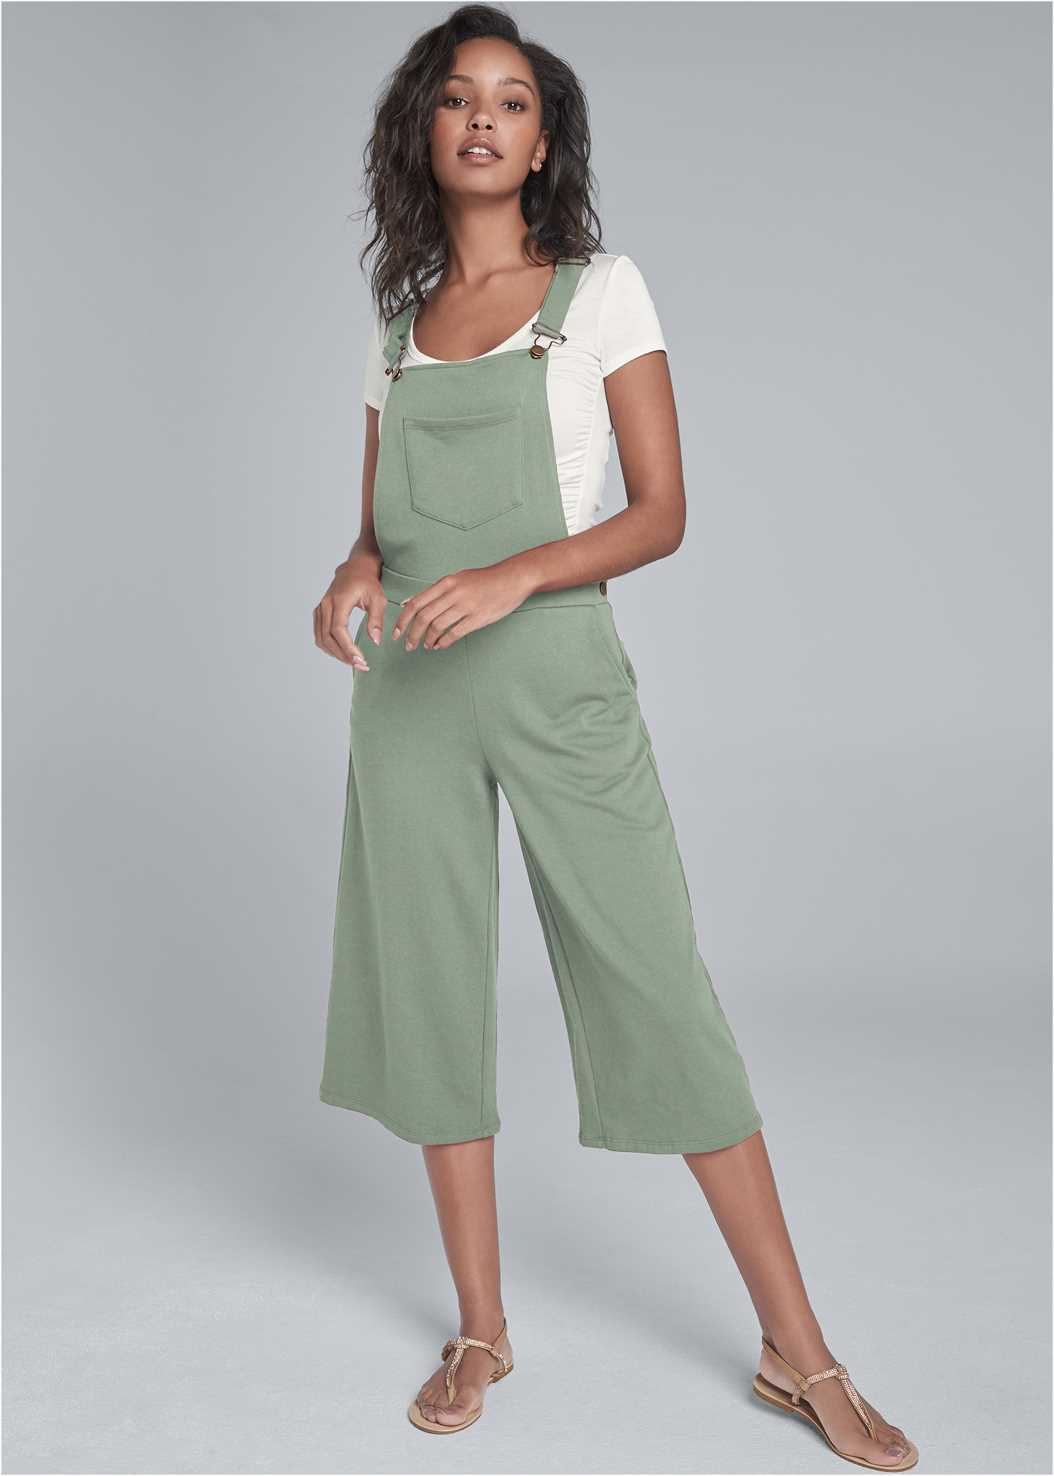 Lounge Culotte Overalls,Ruched Detail Top